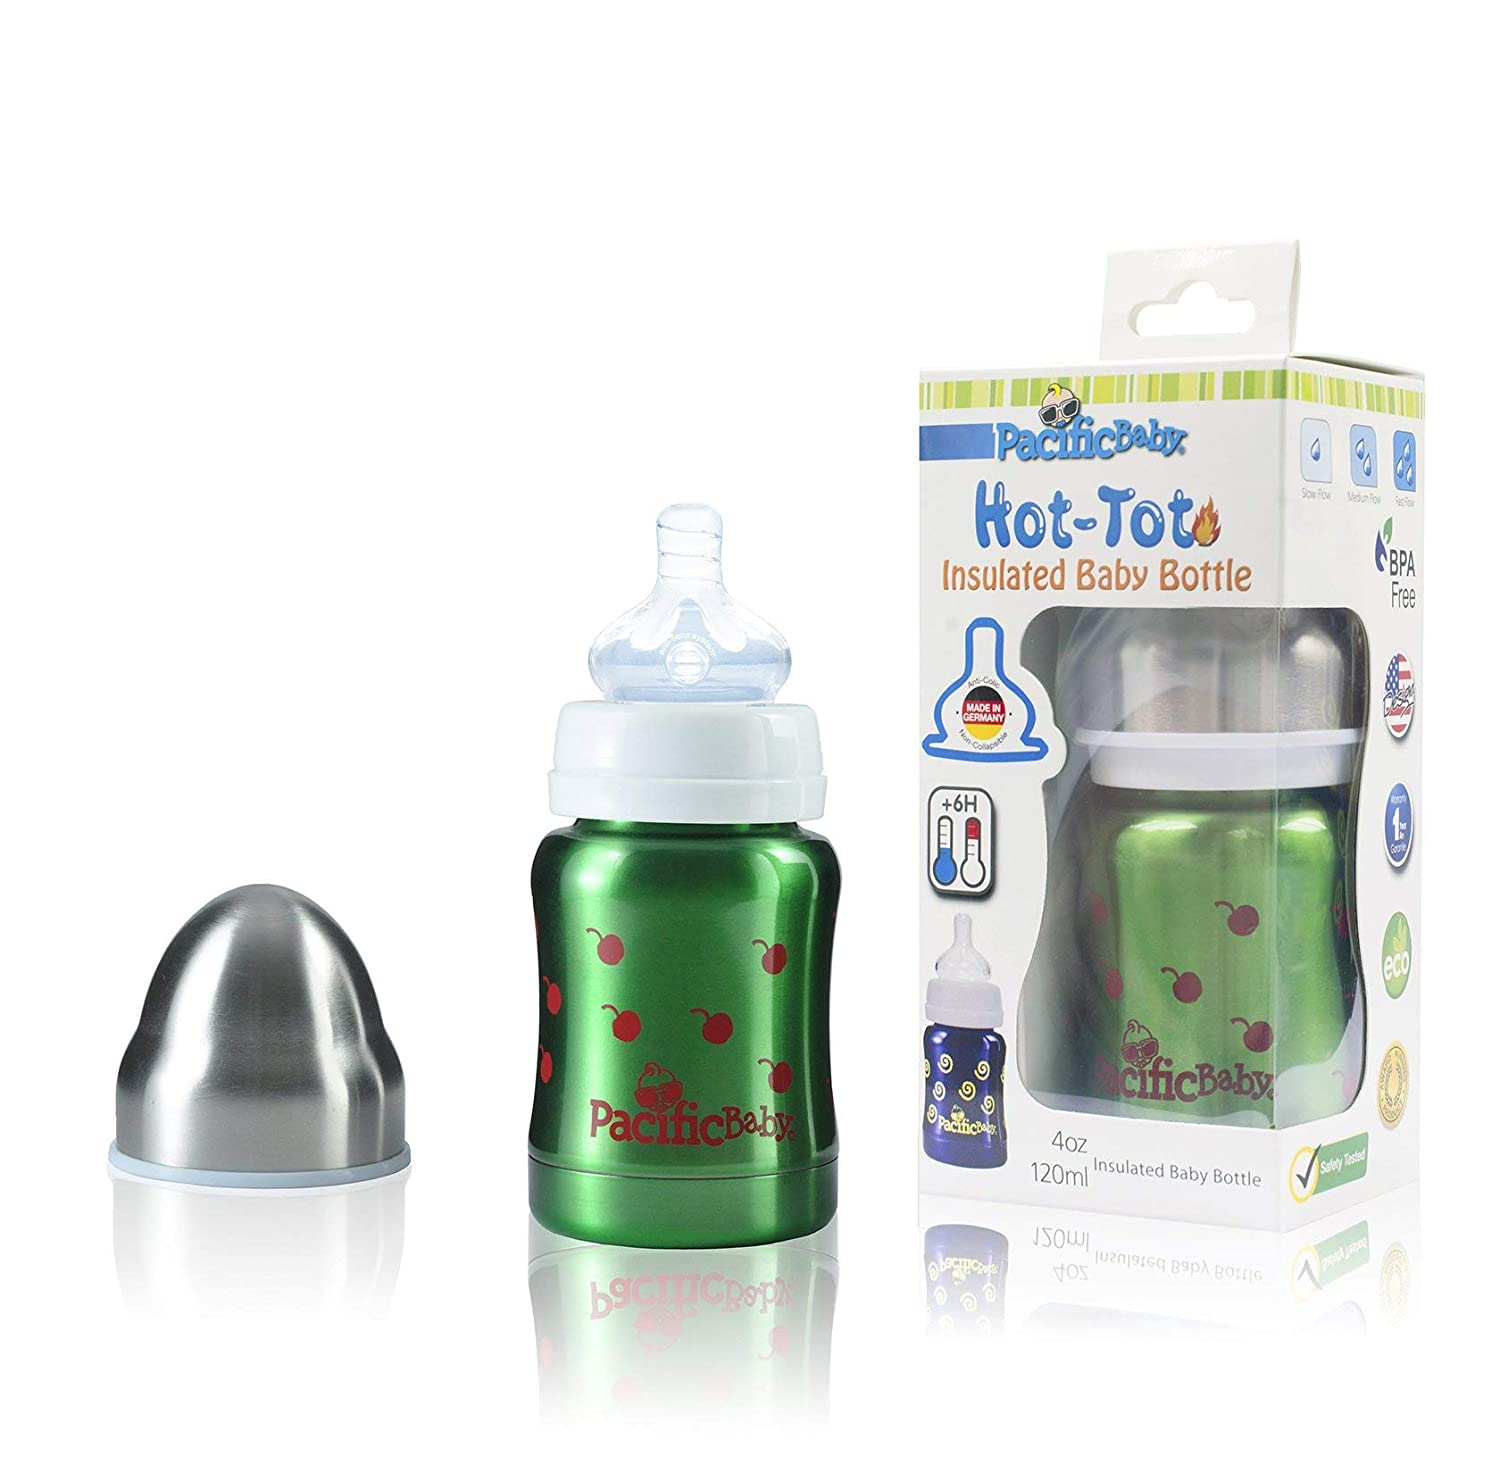 Amazon.com: Pacific Baby hot-tot Insulated Acero Inoxidable ...